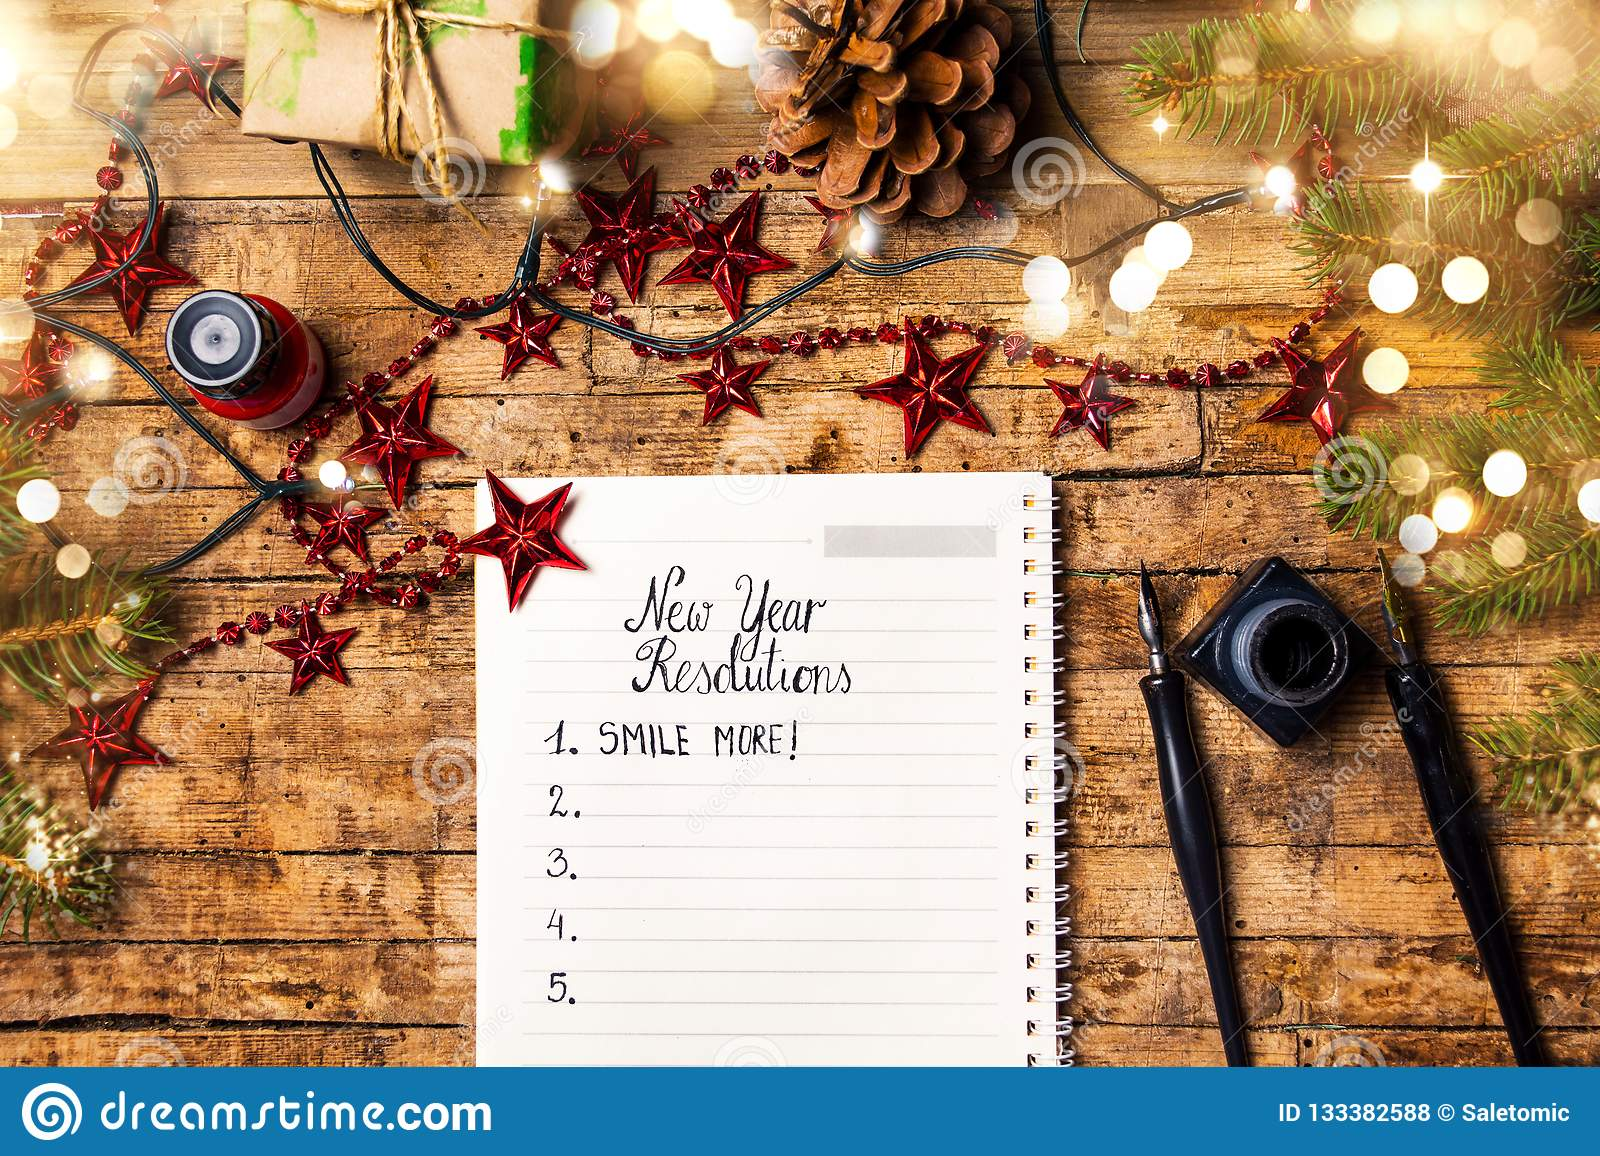 List Of New Year Resolutions With Festive Winter ...